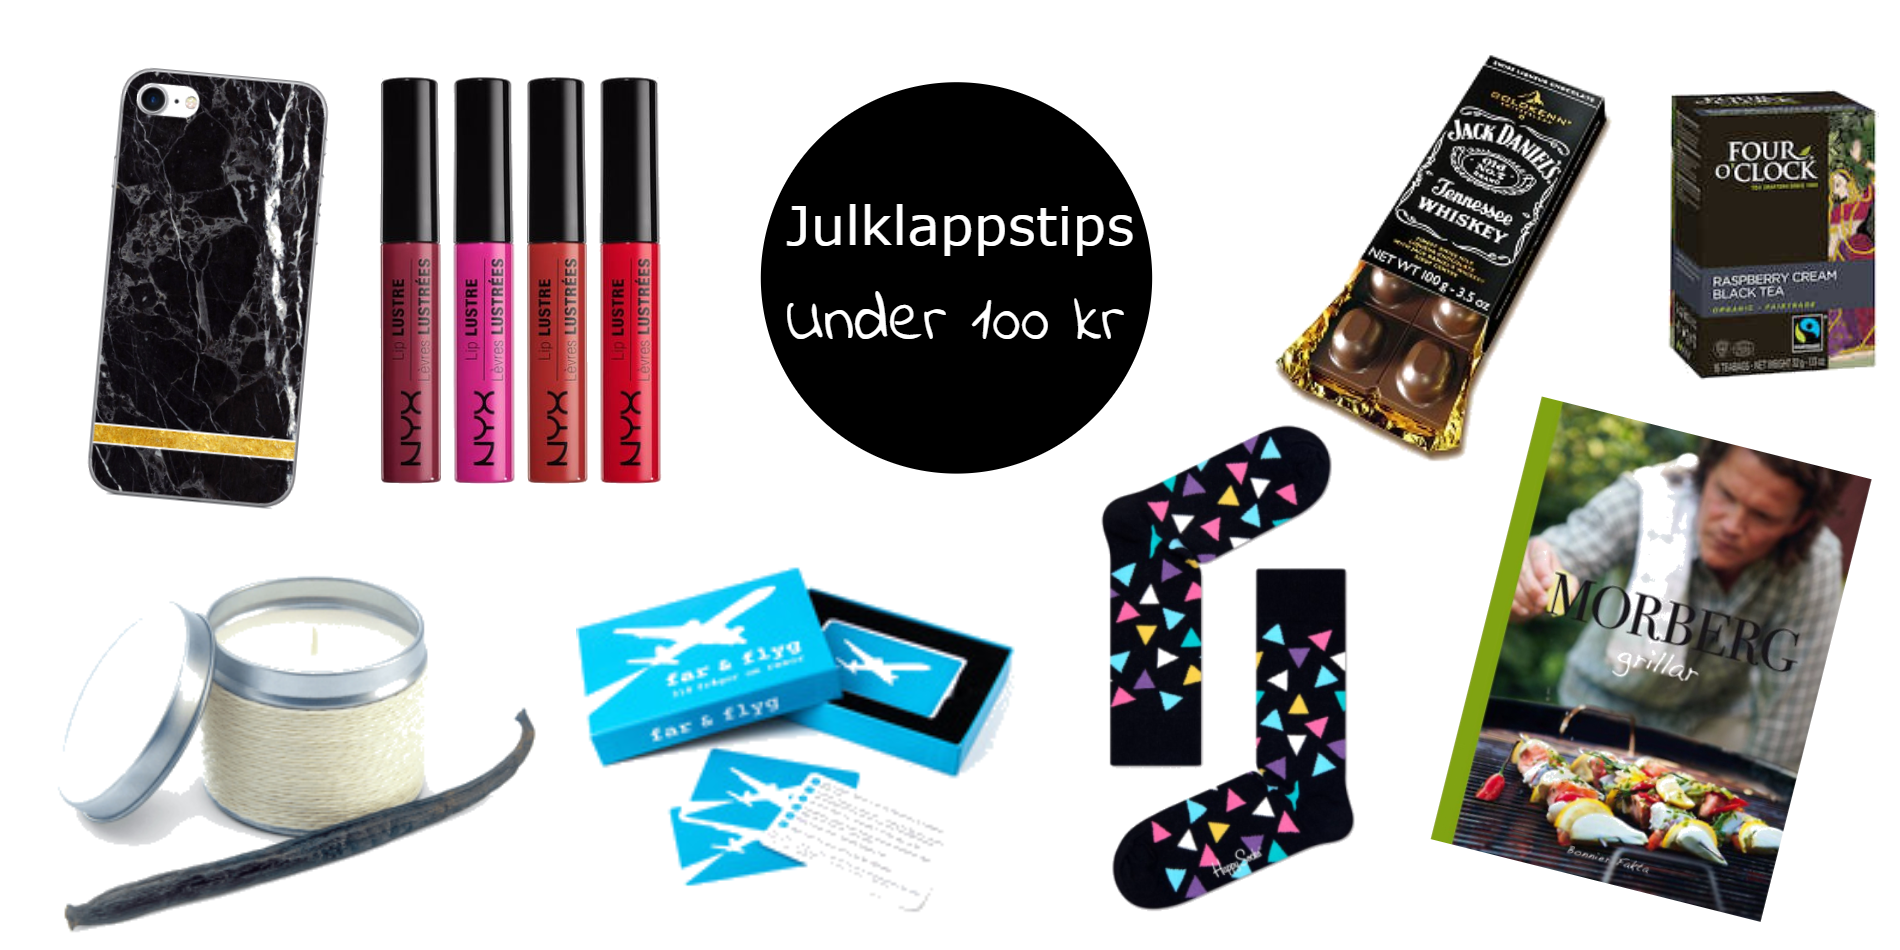 Julklappstips - Under 100 kr